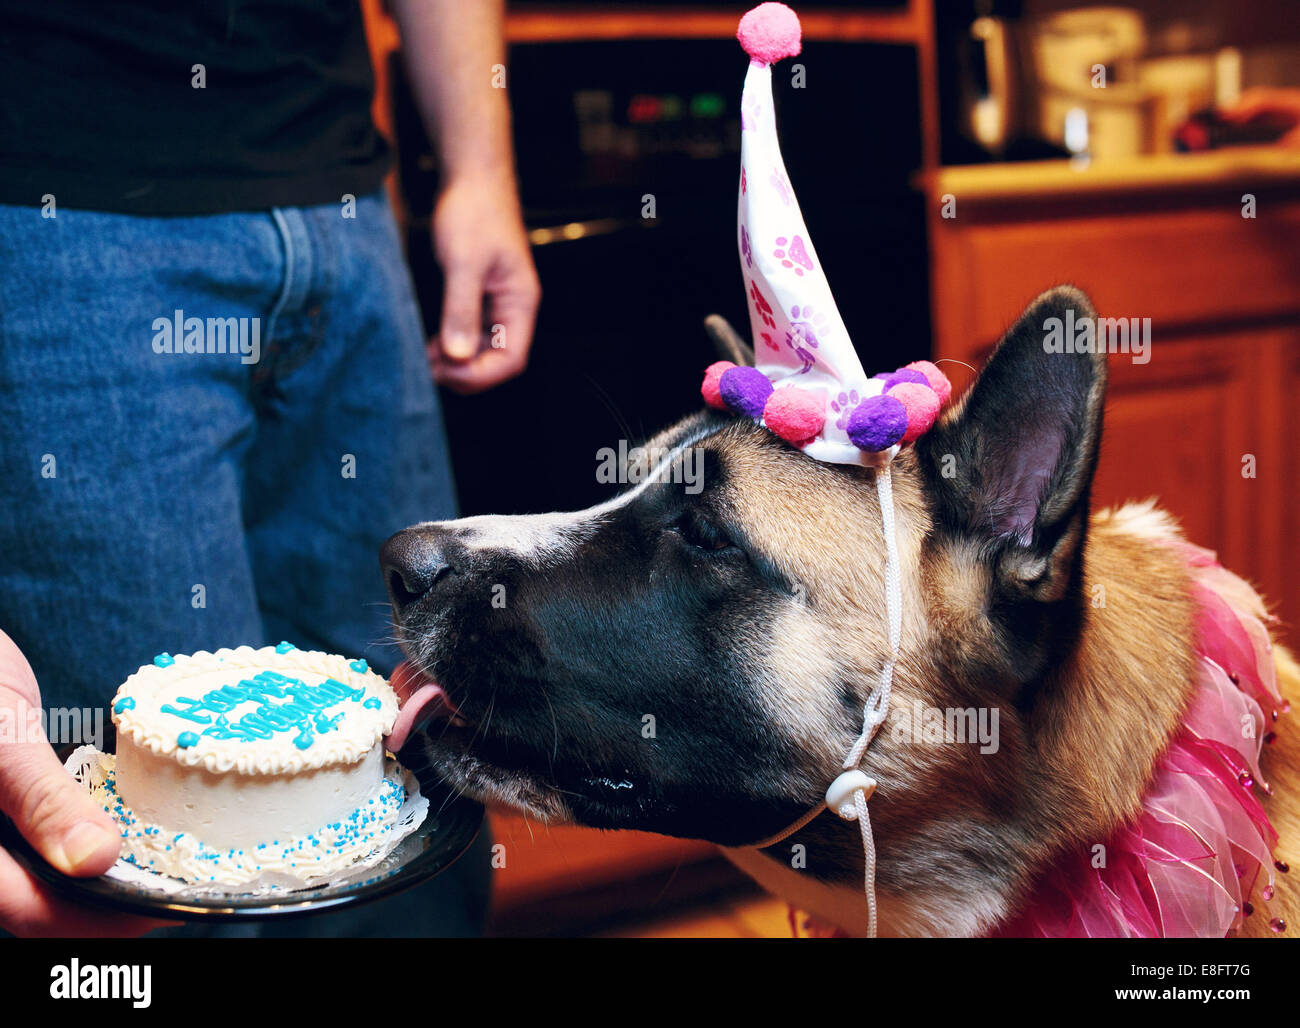 Dog licking birthday cake - Stock Image